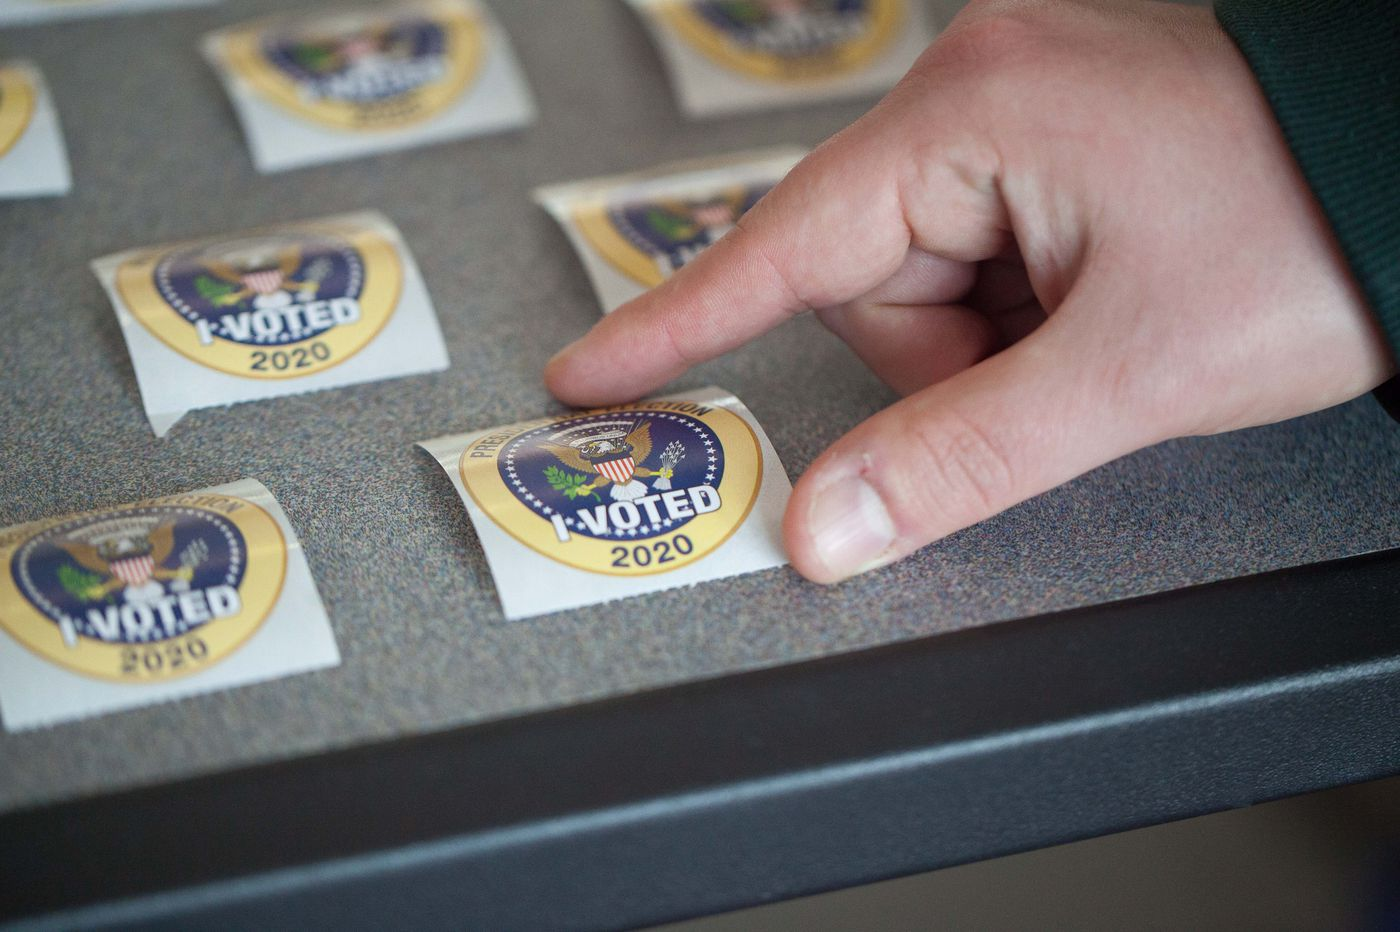 Another judge rejects Republican attempt to shut down early voting center in Chester